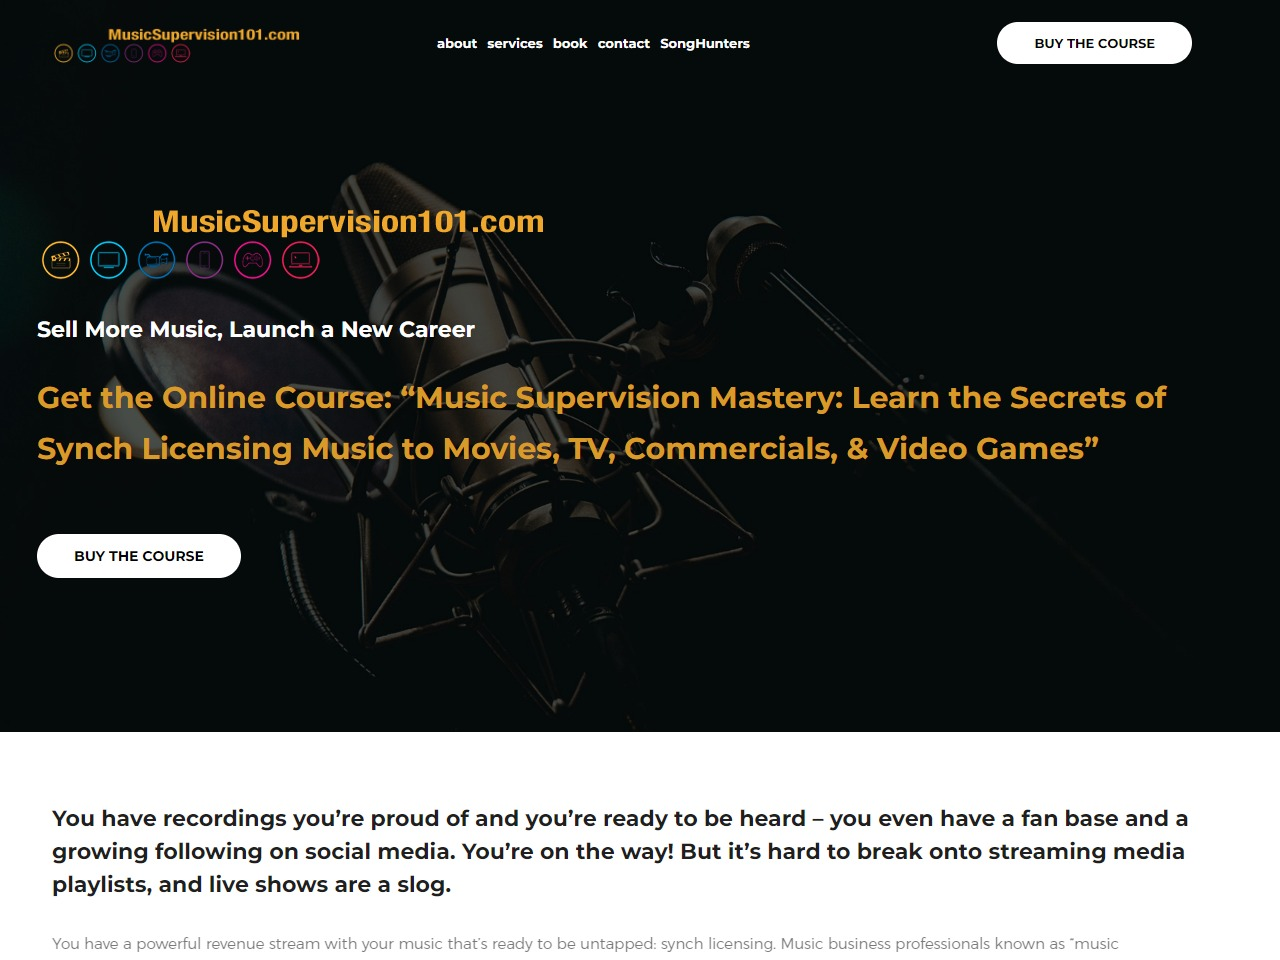 Music Supervision 101 - Online course and book